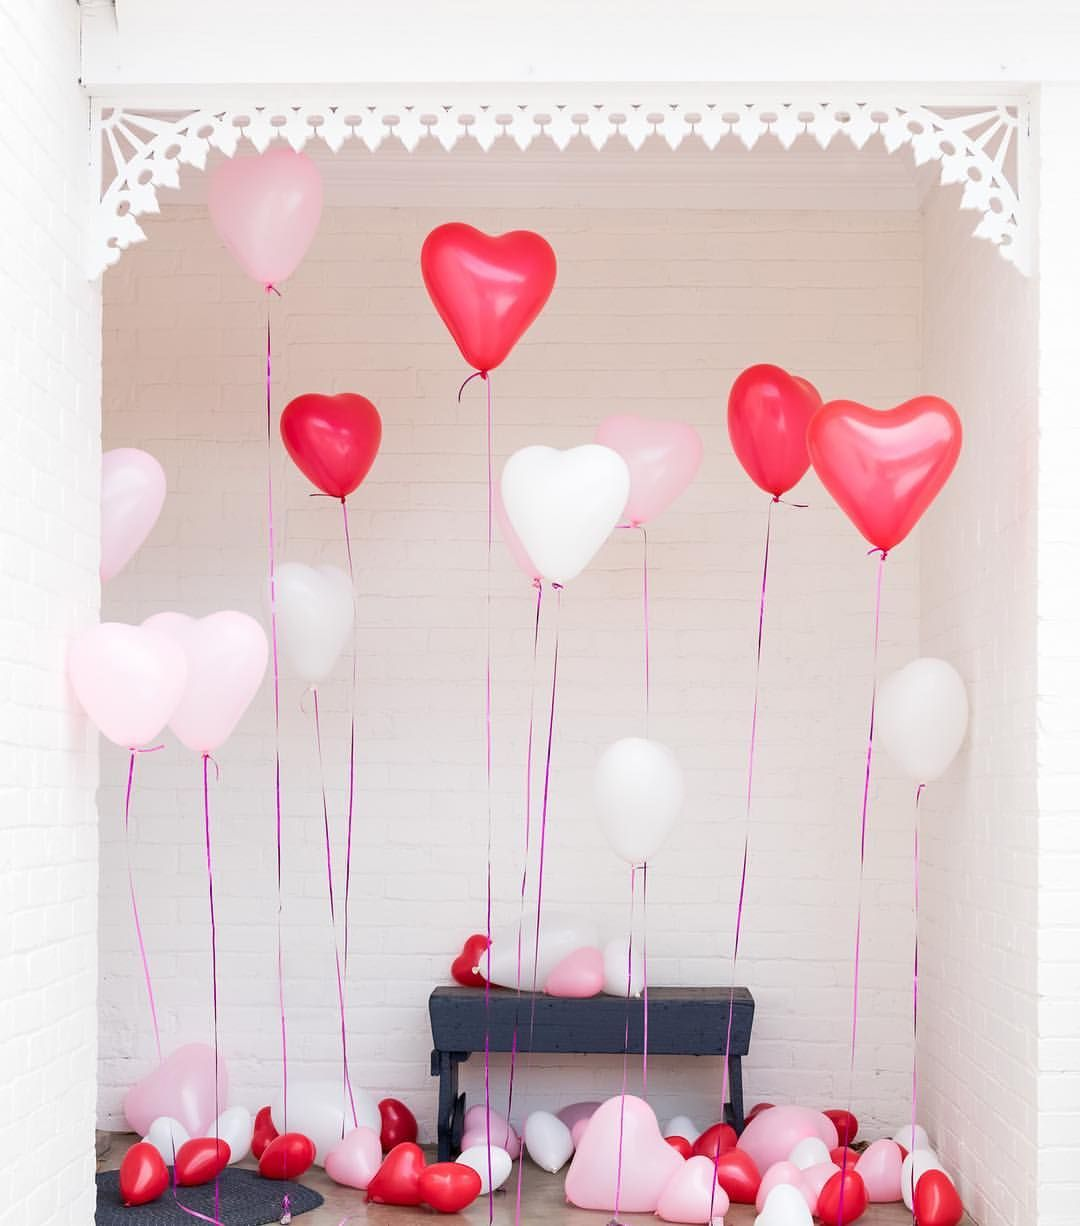 "1,031 Likes, 19 Comments - The House that Lars Built (@houselarsbuilt) on Instagram: ""Give someone a Balloon 🎈Heart ♥️ Attack this Valentine's Day! Surprise your Valentine by covering…"""